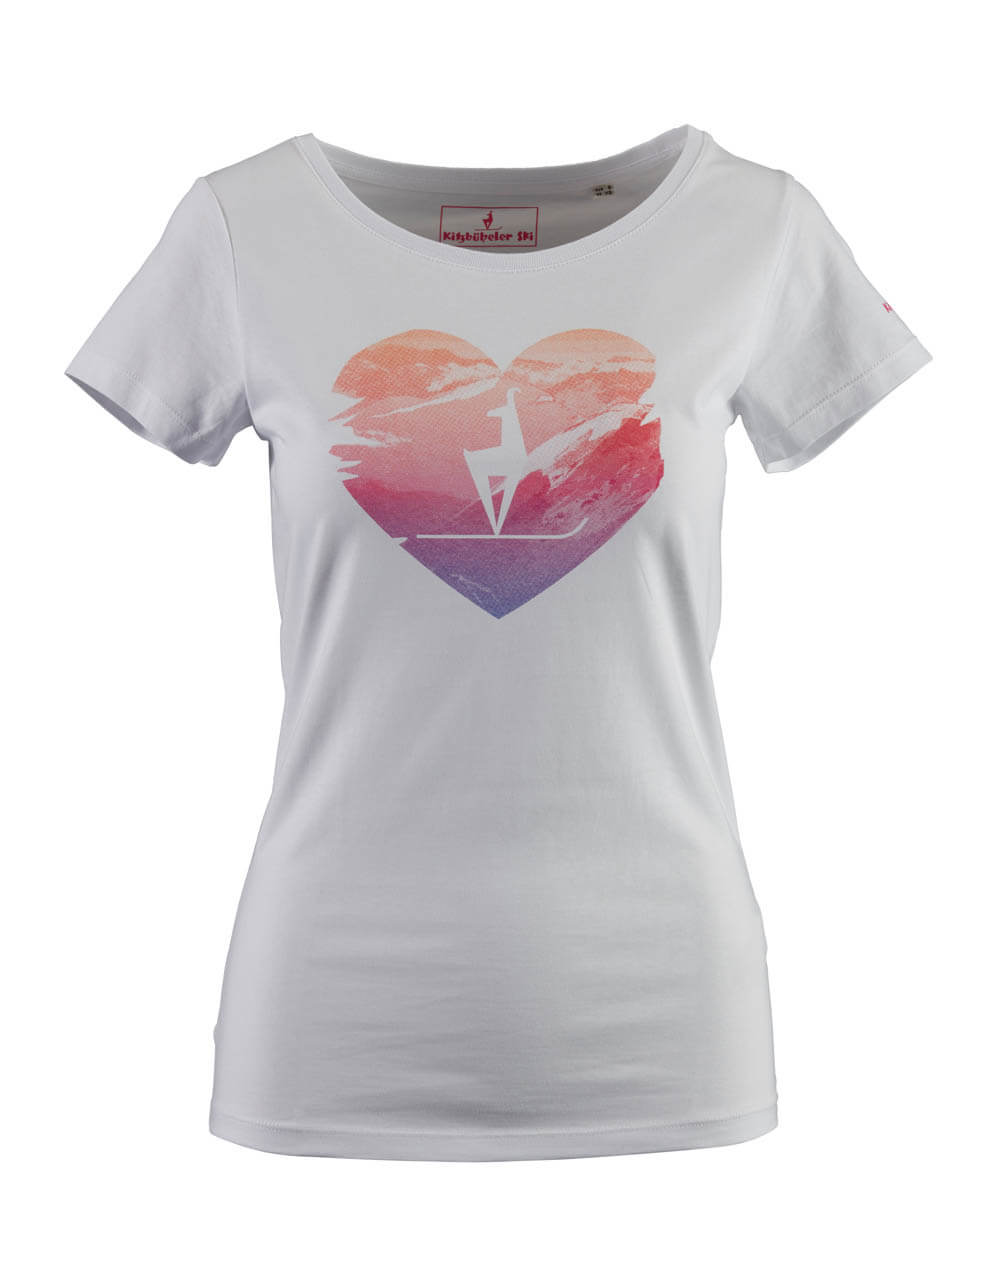 681736100 Damen T-Shirt weiss heart